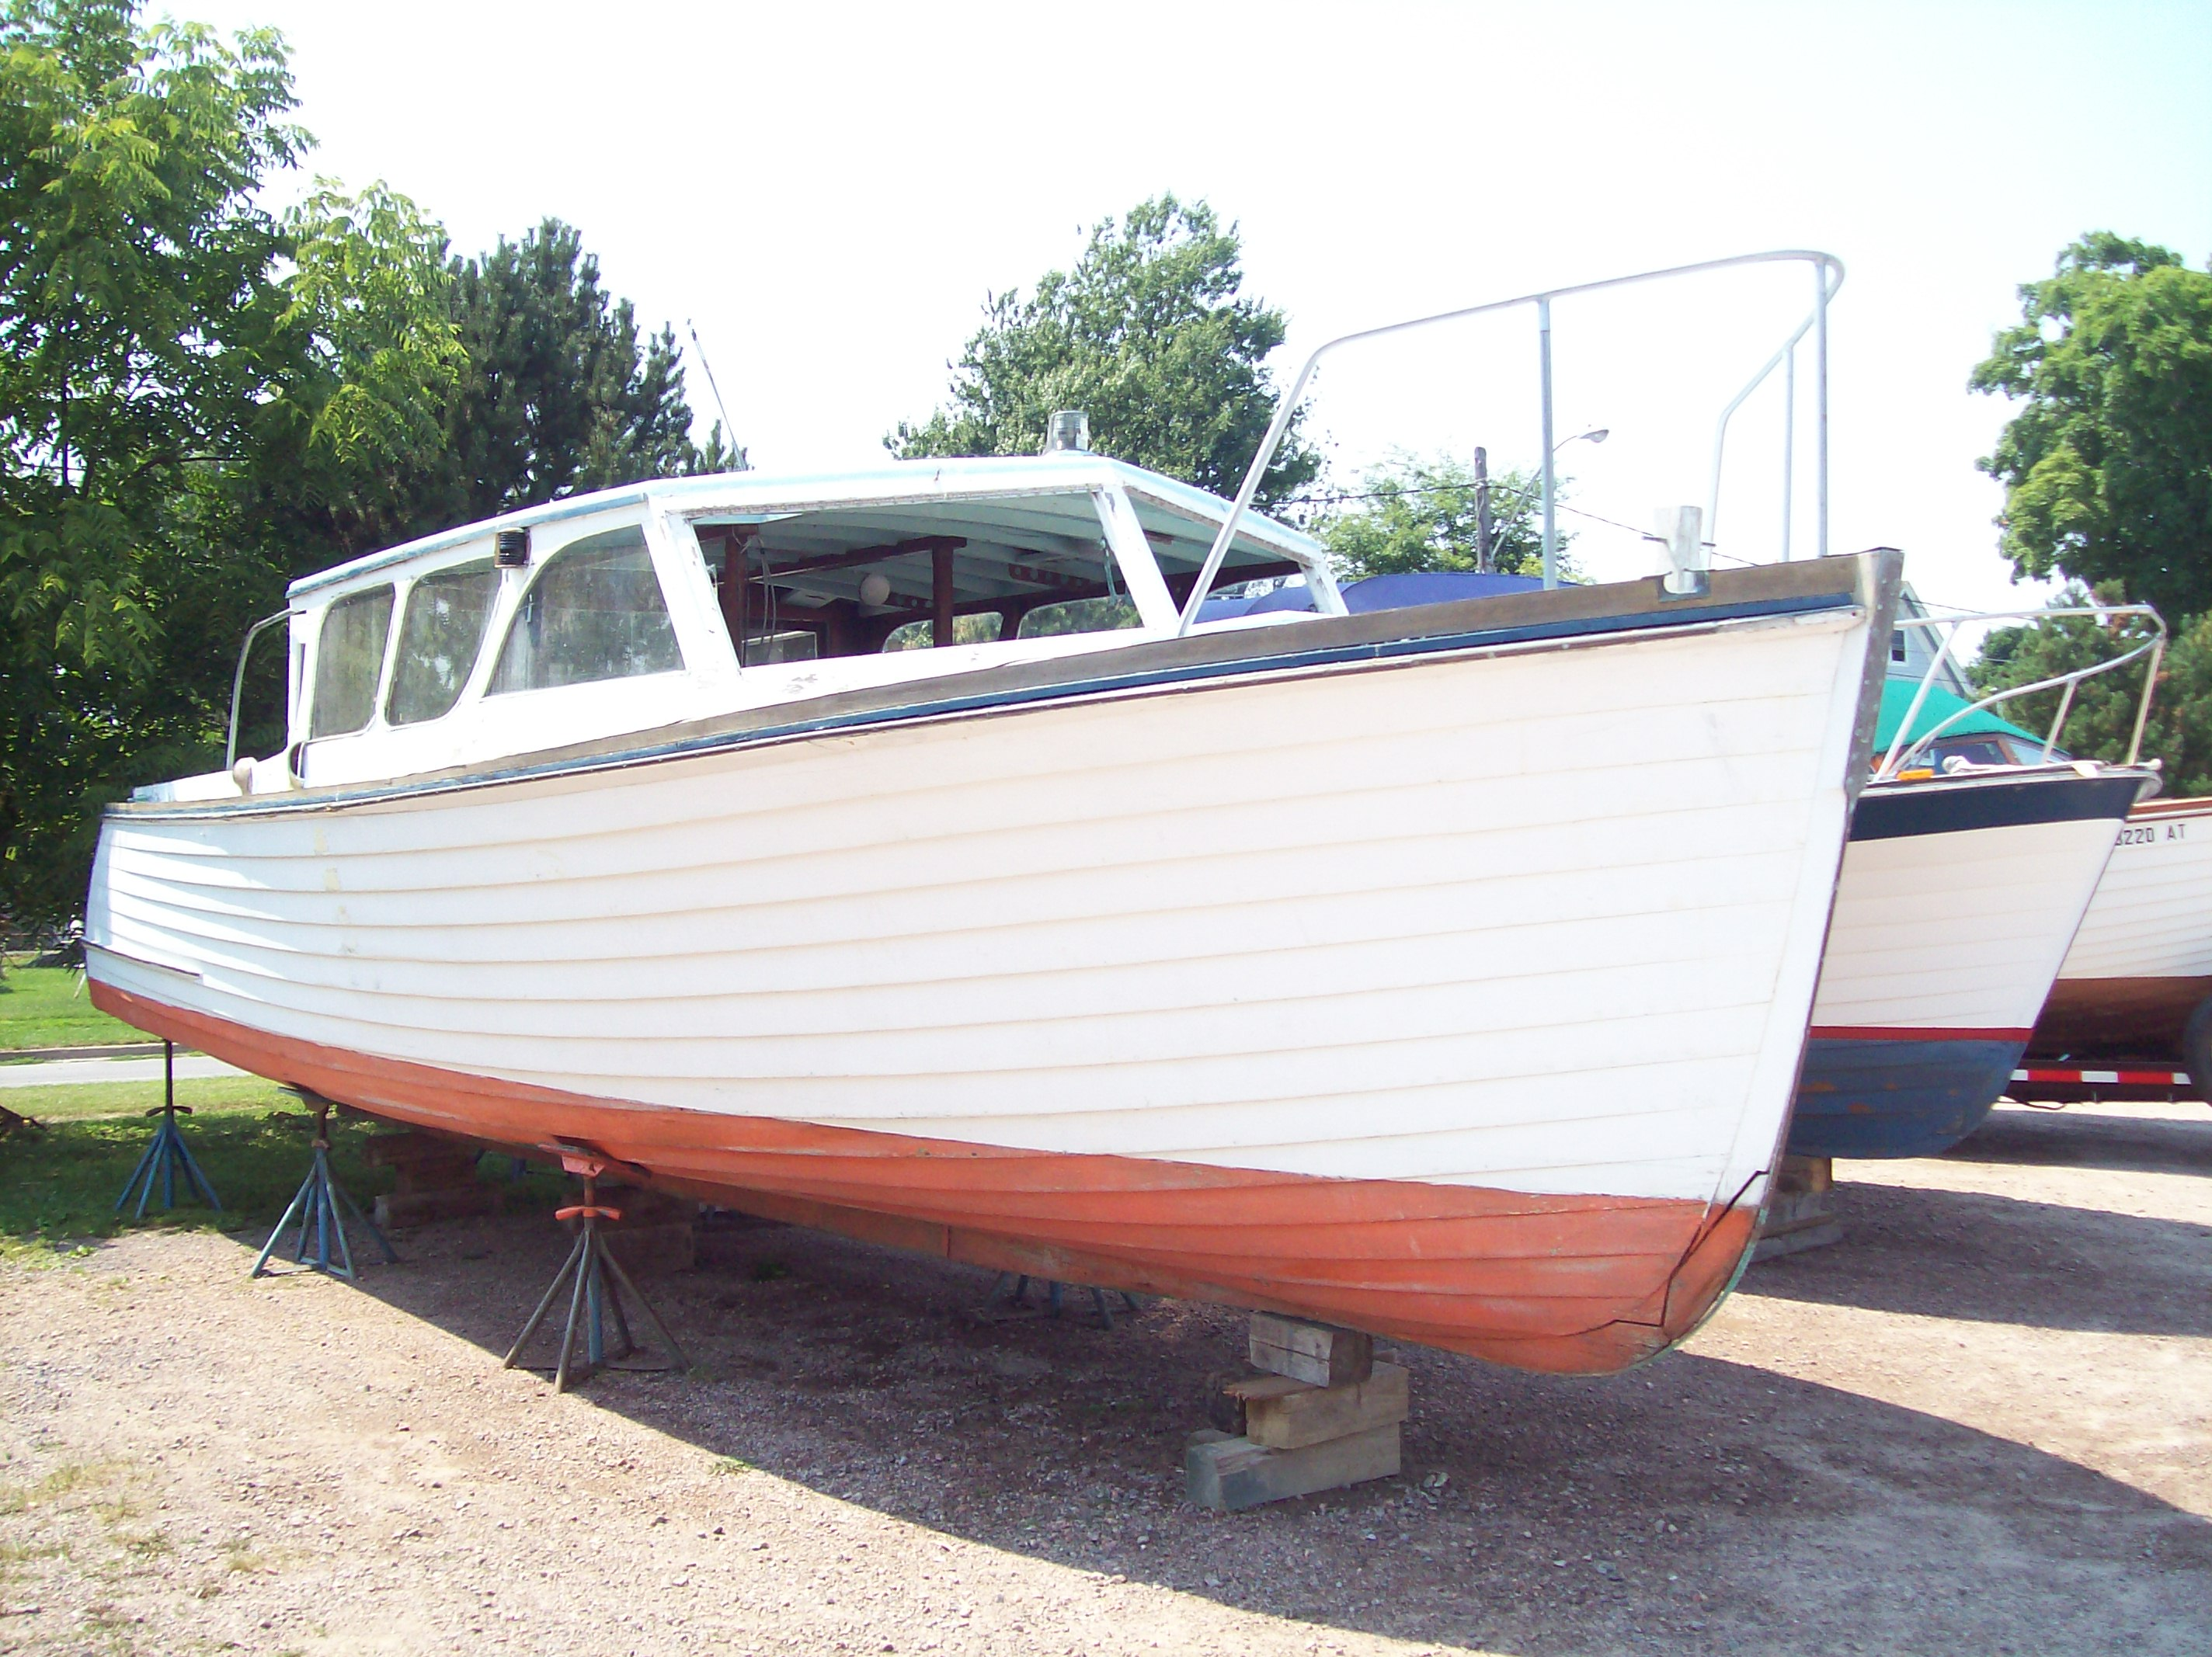 boats the boat triple a wide launches give stance cabin beam premier engines first com foot encounter cabins cruiser and